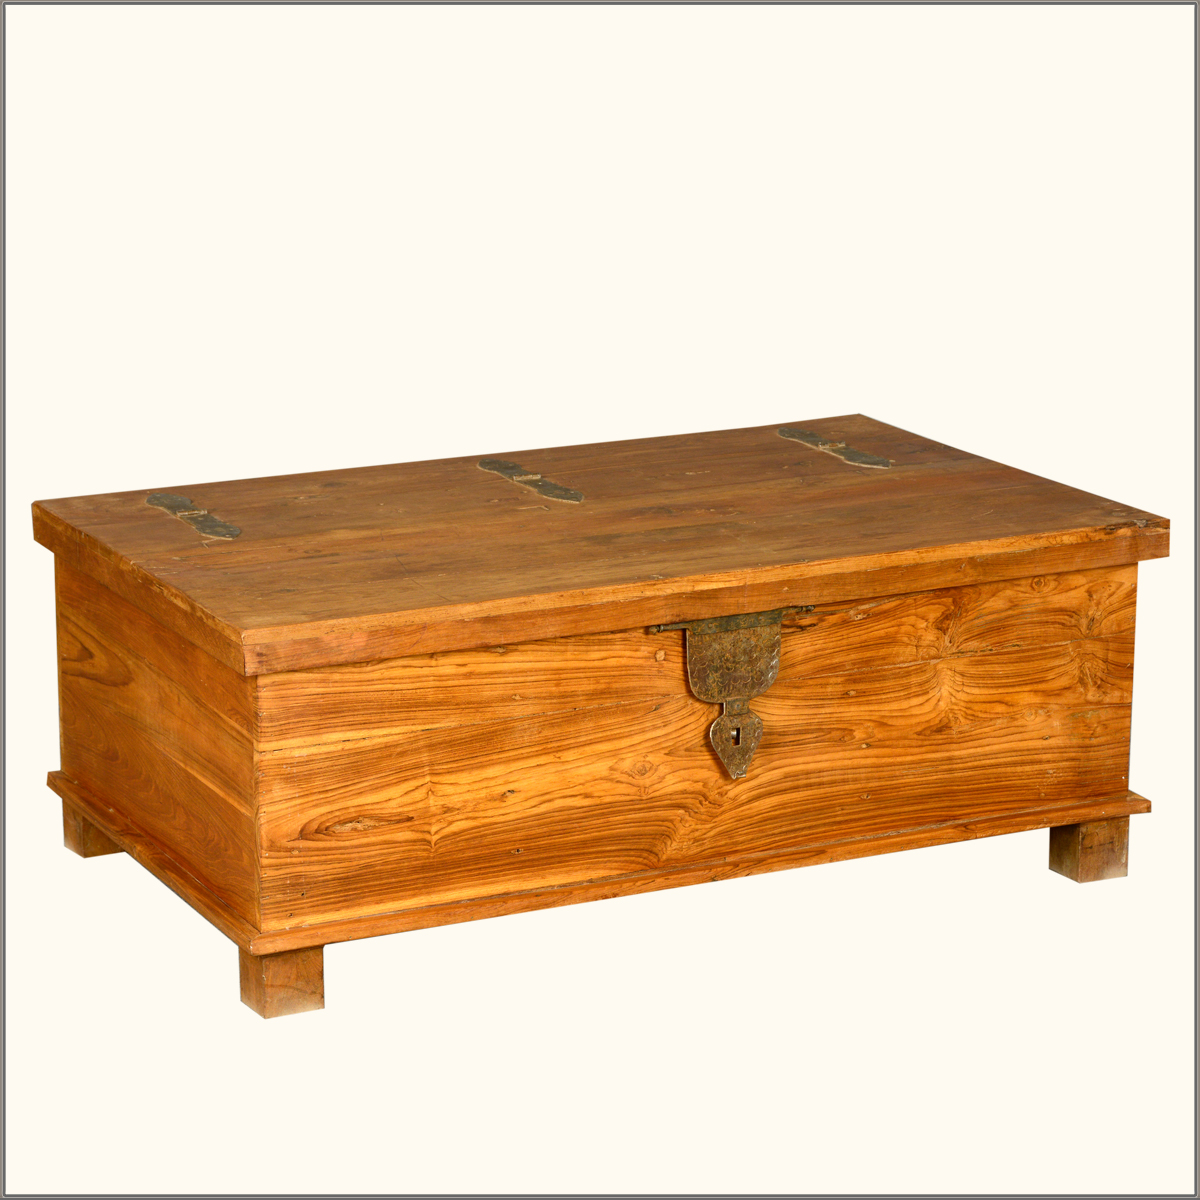 Wrought Iron Distressed Coffee Table Storage Box Chest Trunk EBay